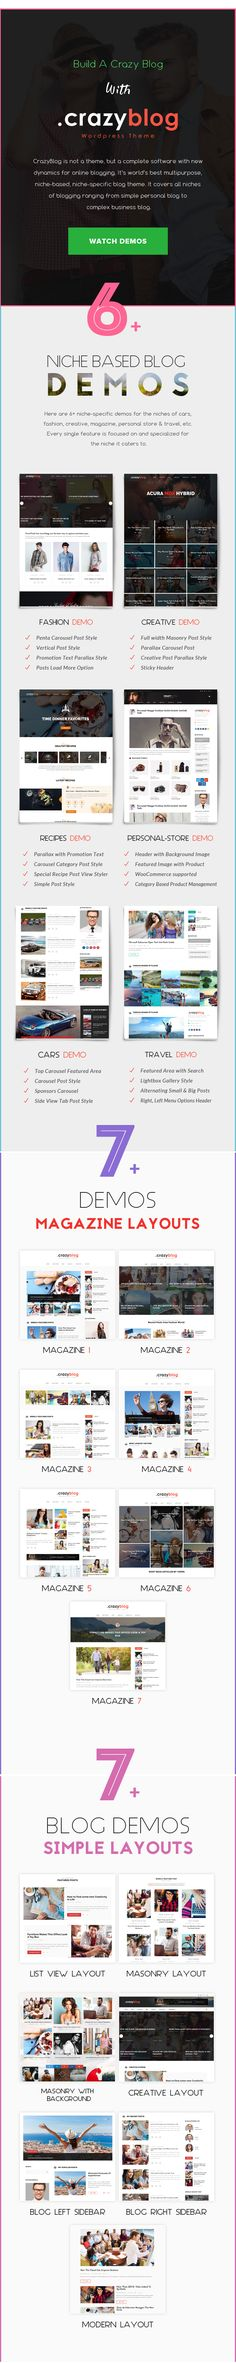 CrazyBlog Start A Blog Or Magazine For Adsense Affiliate Business Template Dice